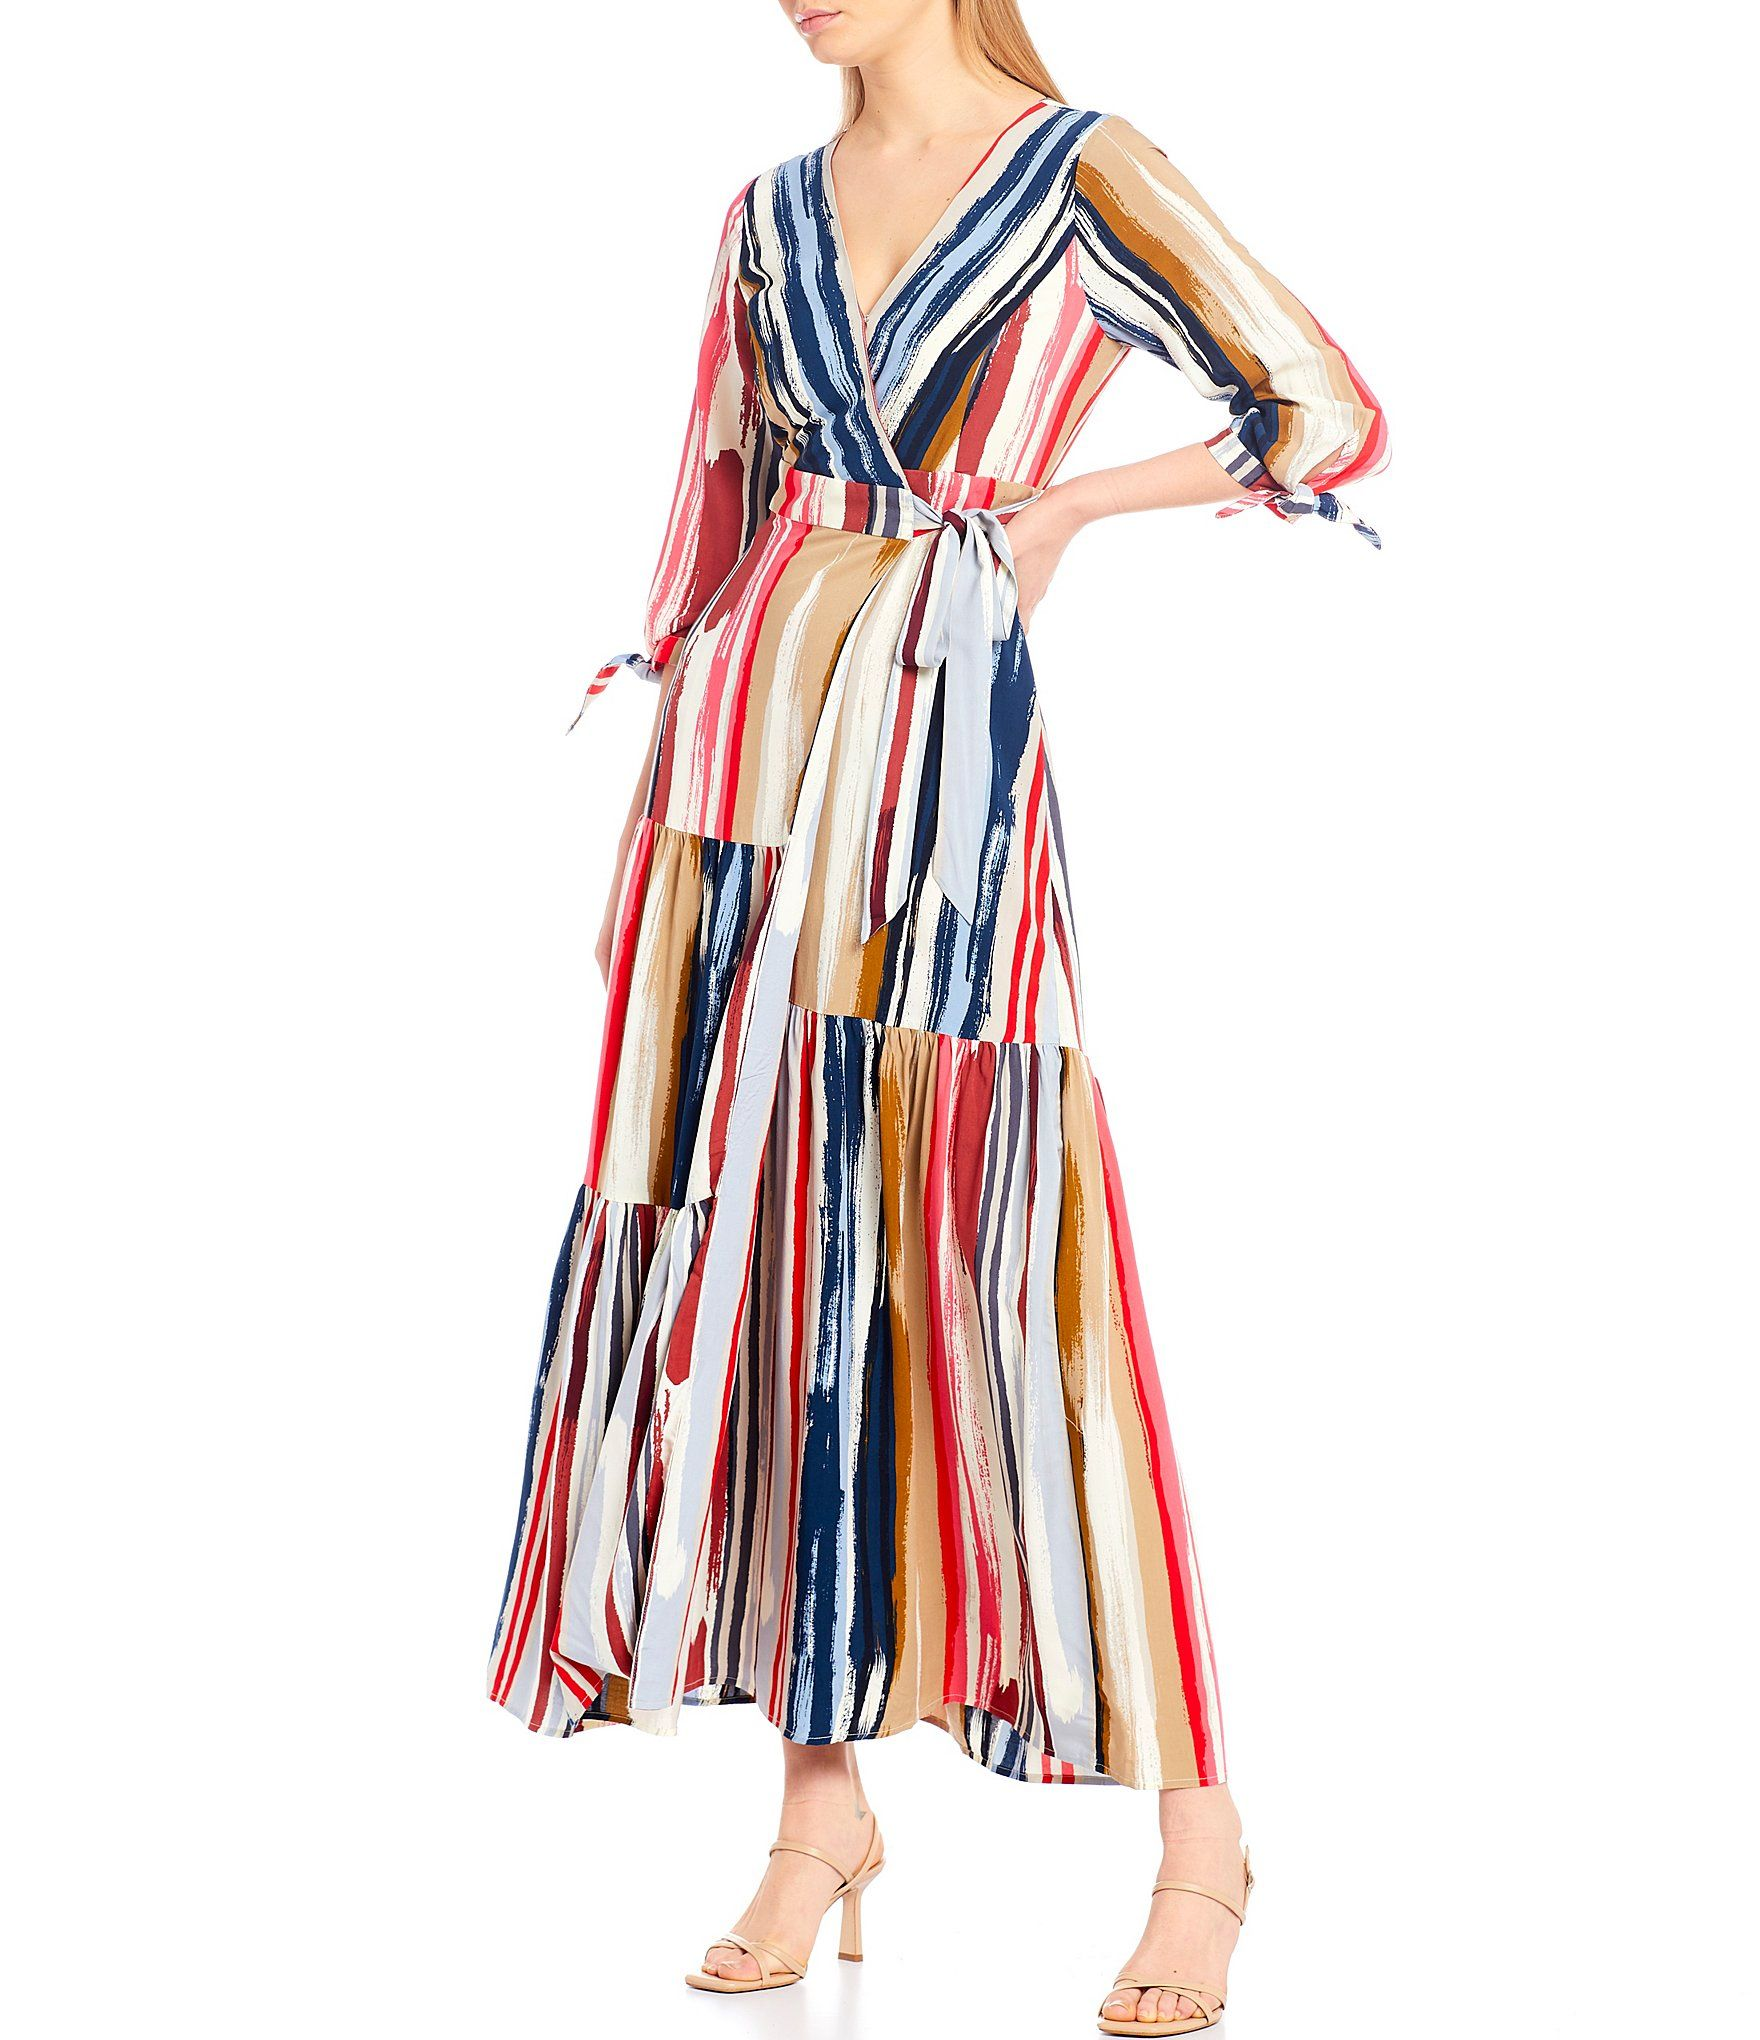 Skies Are Blue Paintbrush Wrap 3 4 Sleeve Maxi Dress Dillard S Maxi Dress With Sleeves Maxi Dress Formal Dresses For Teens [ 2040 x 1760 Pixel ]